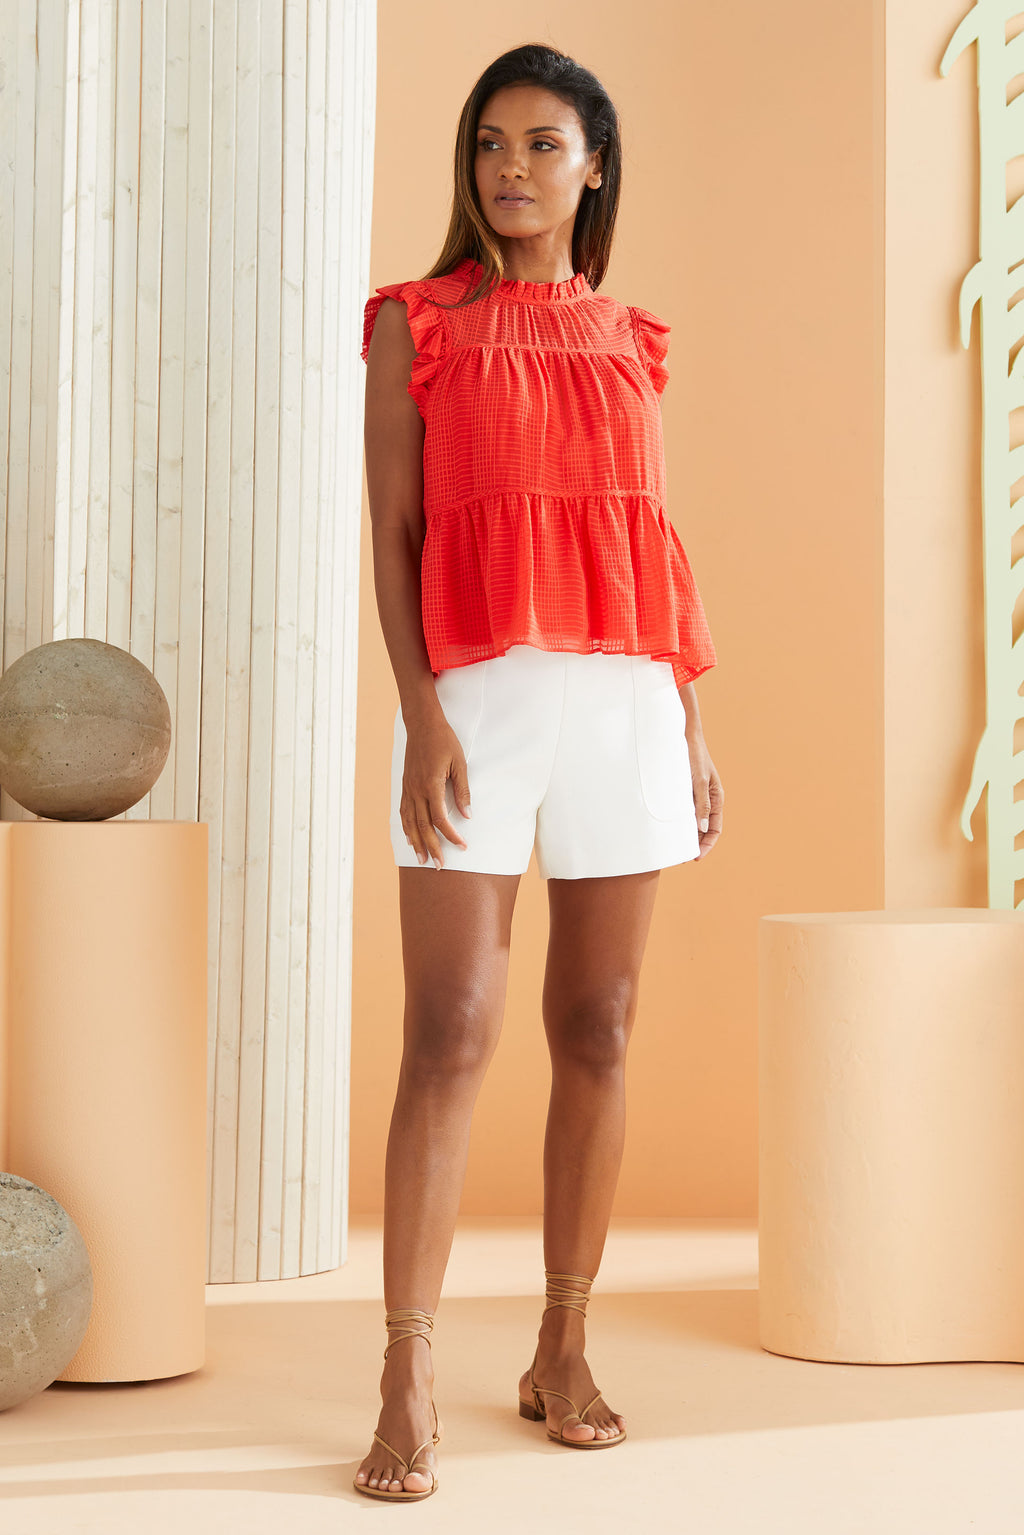 textured red top with ruffle detailing